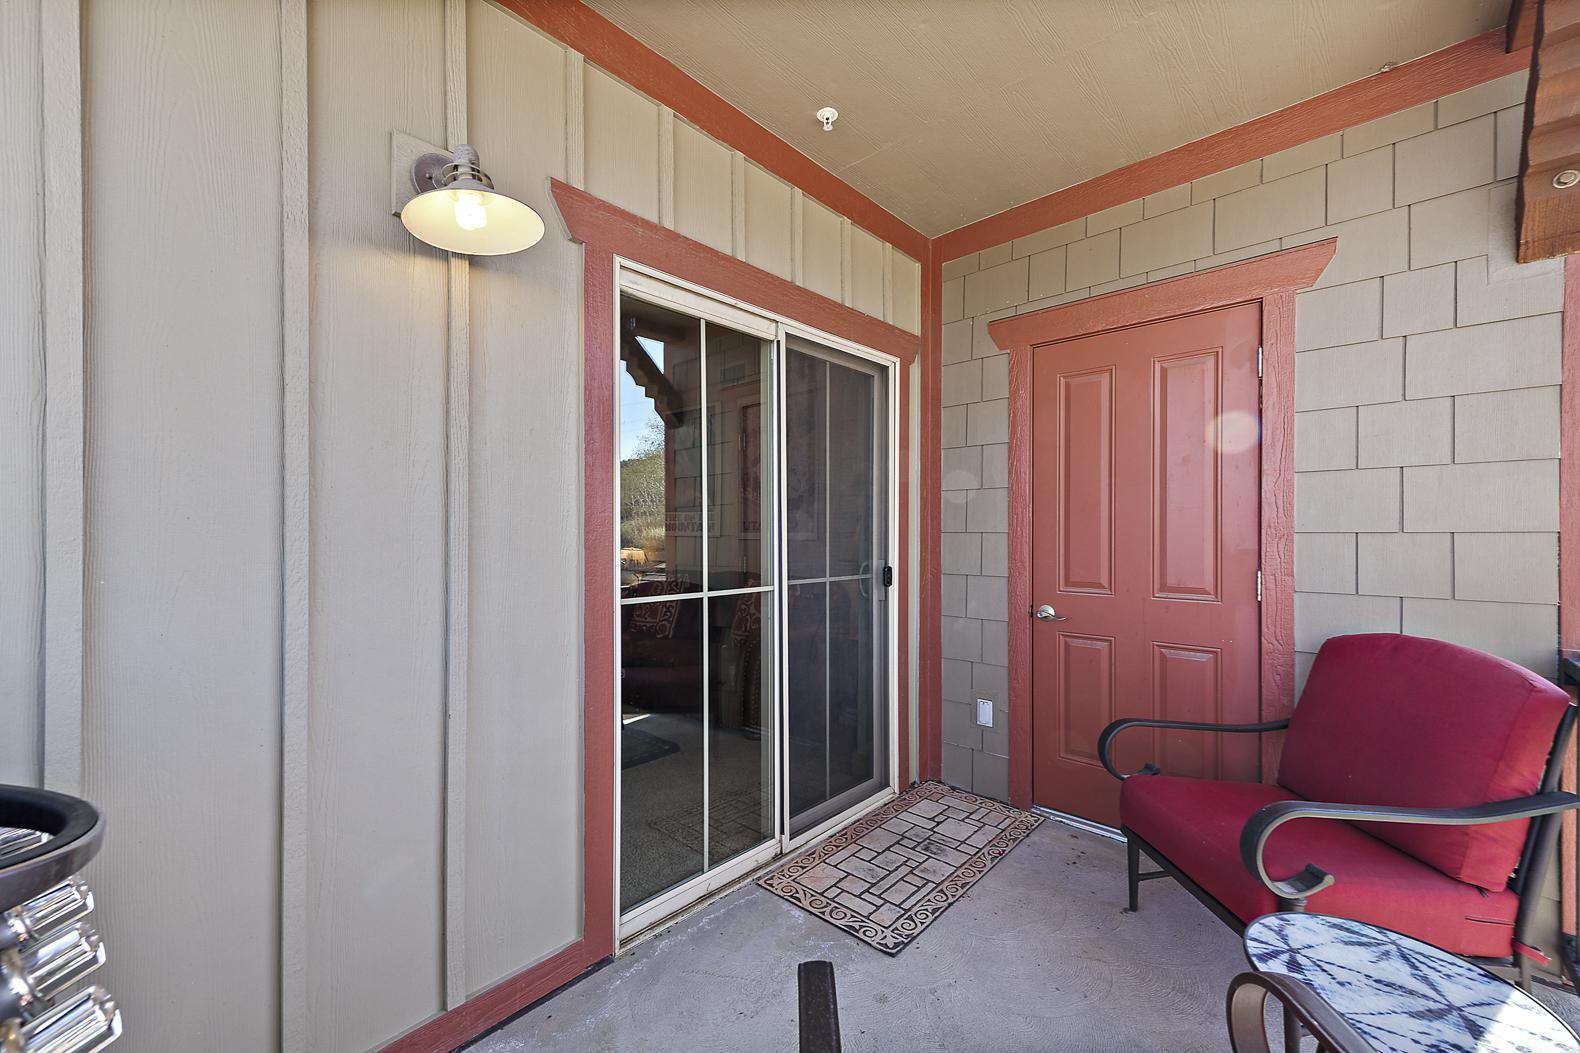 Balcony with sliding door entrance to living room